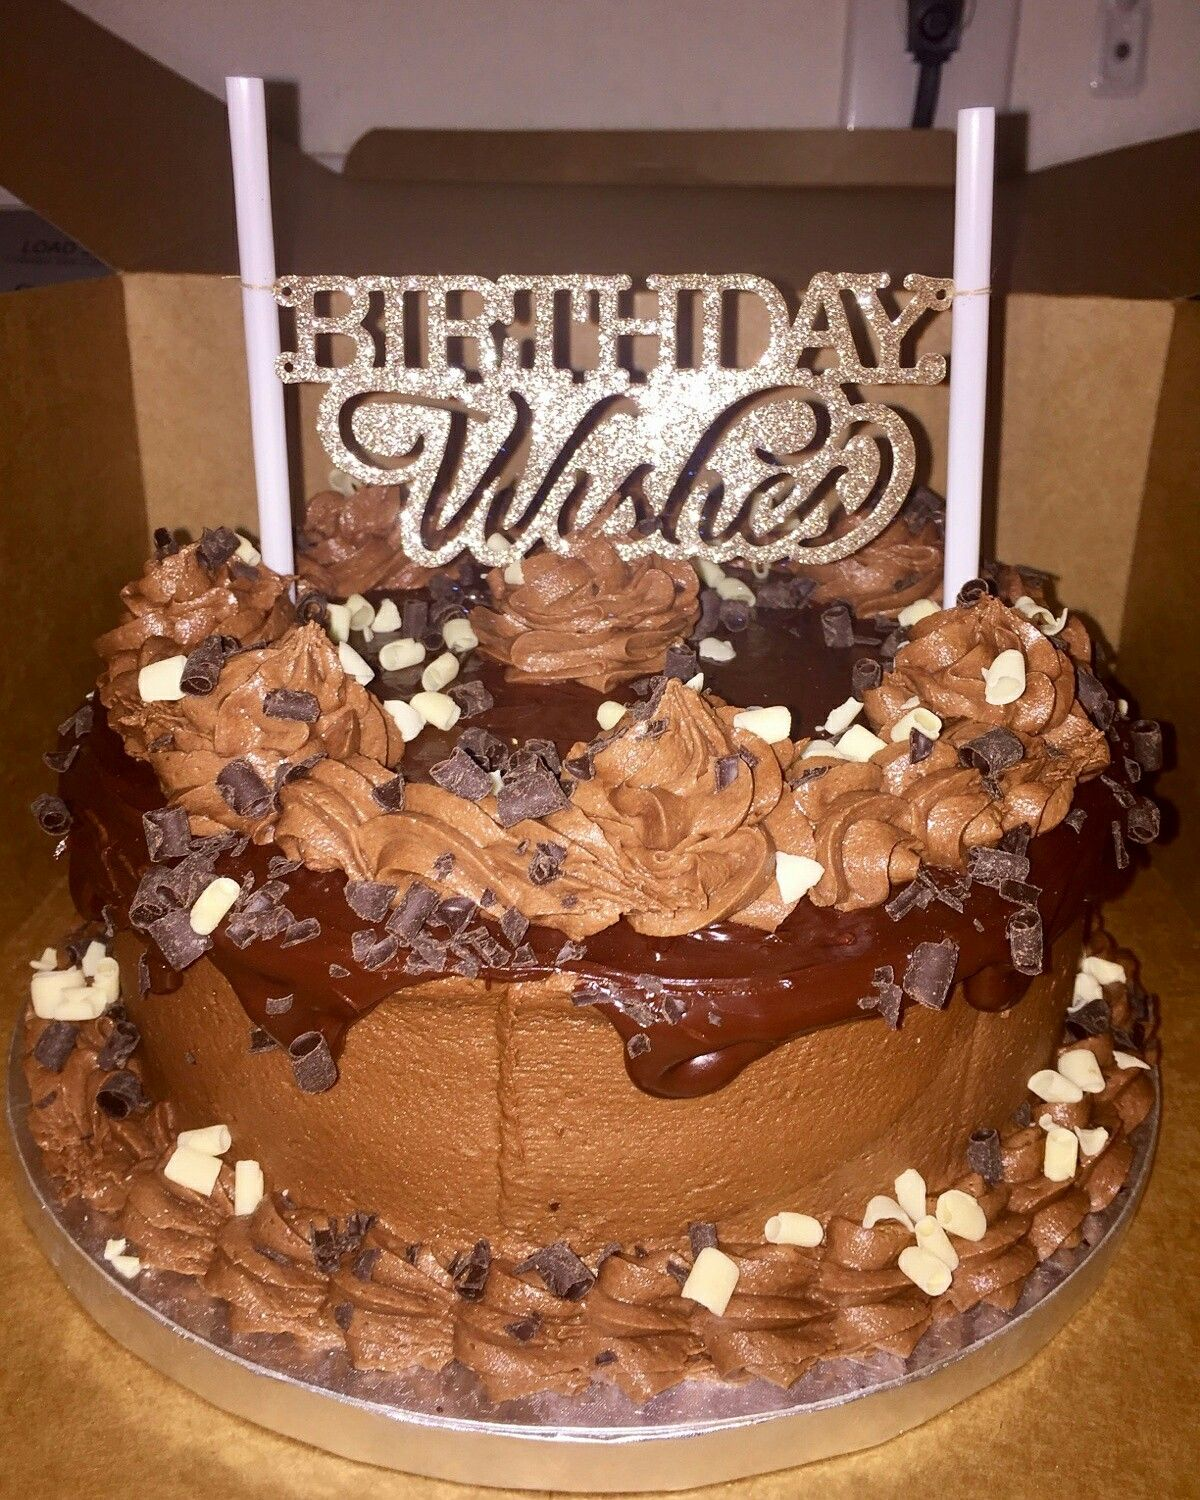 Chocolate On Birthday Cake Order By Monique Salazar